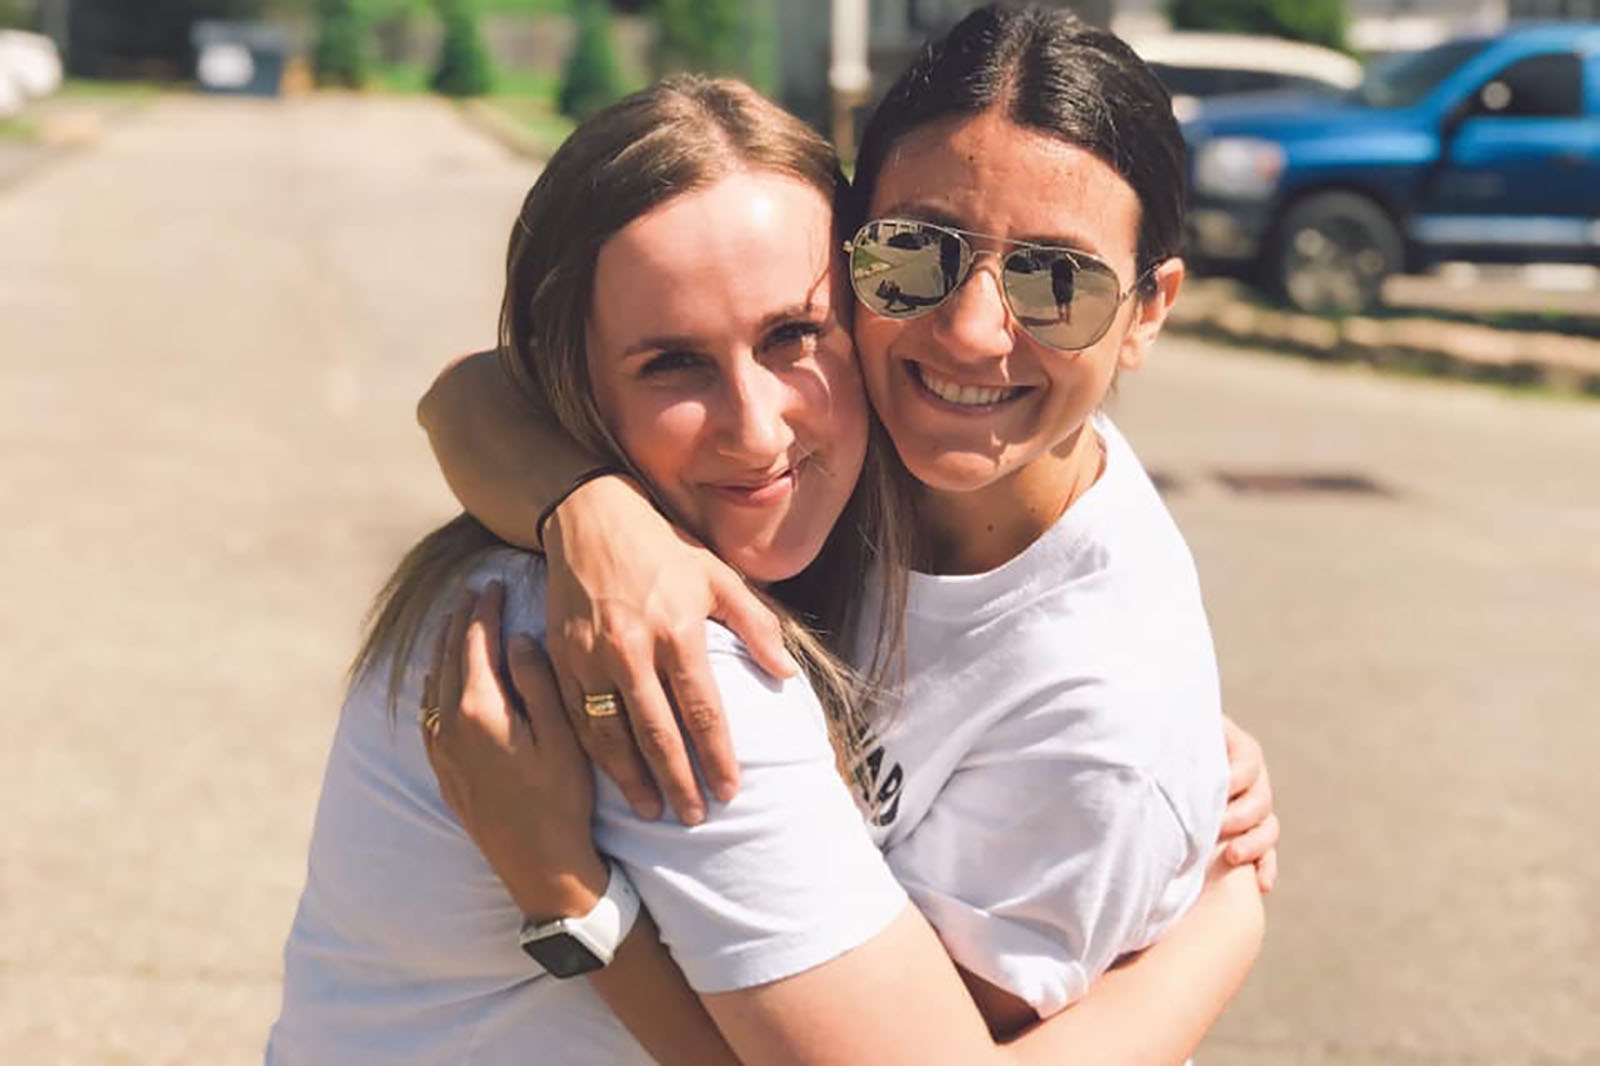 10 Years of Friendship — Q&A with Bianca and Sarah